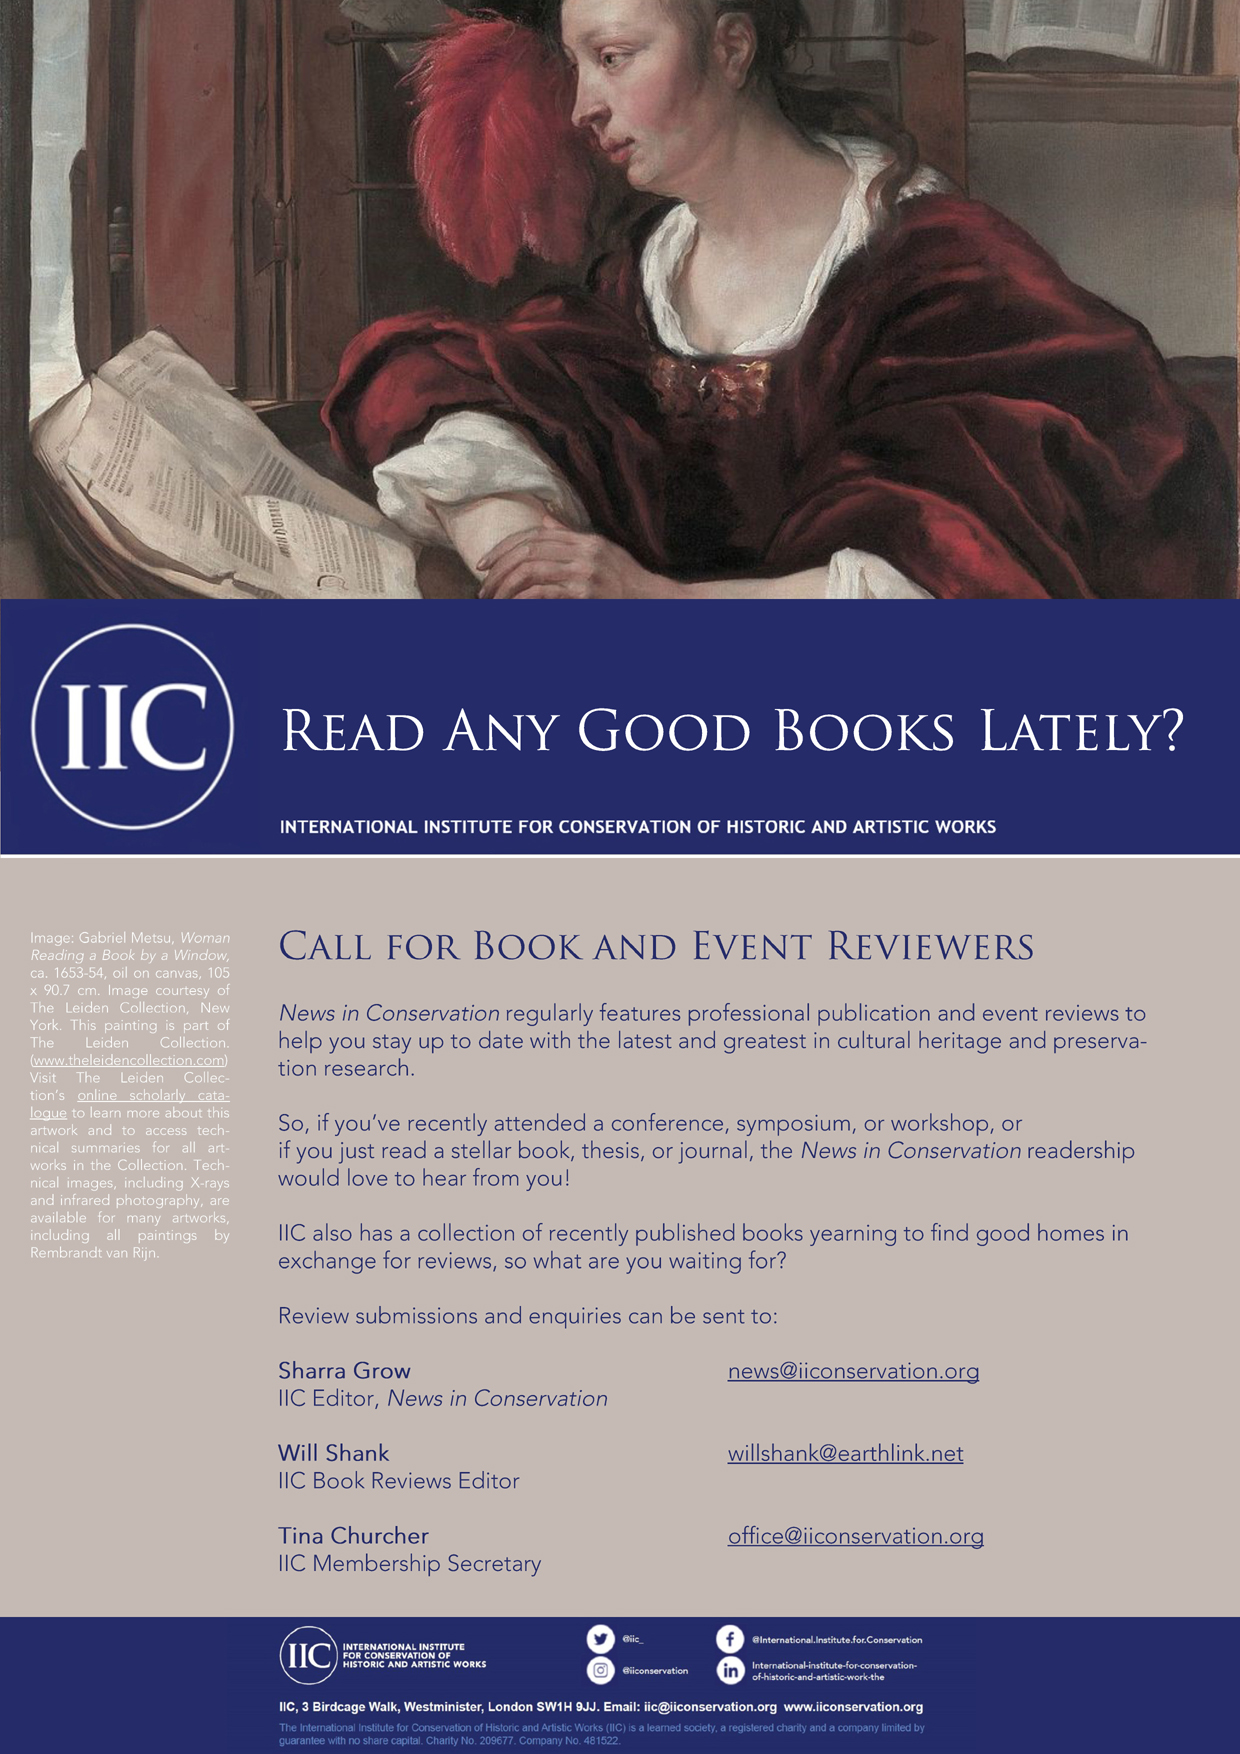 Call for Book and Event Reviews (NiC)